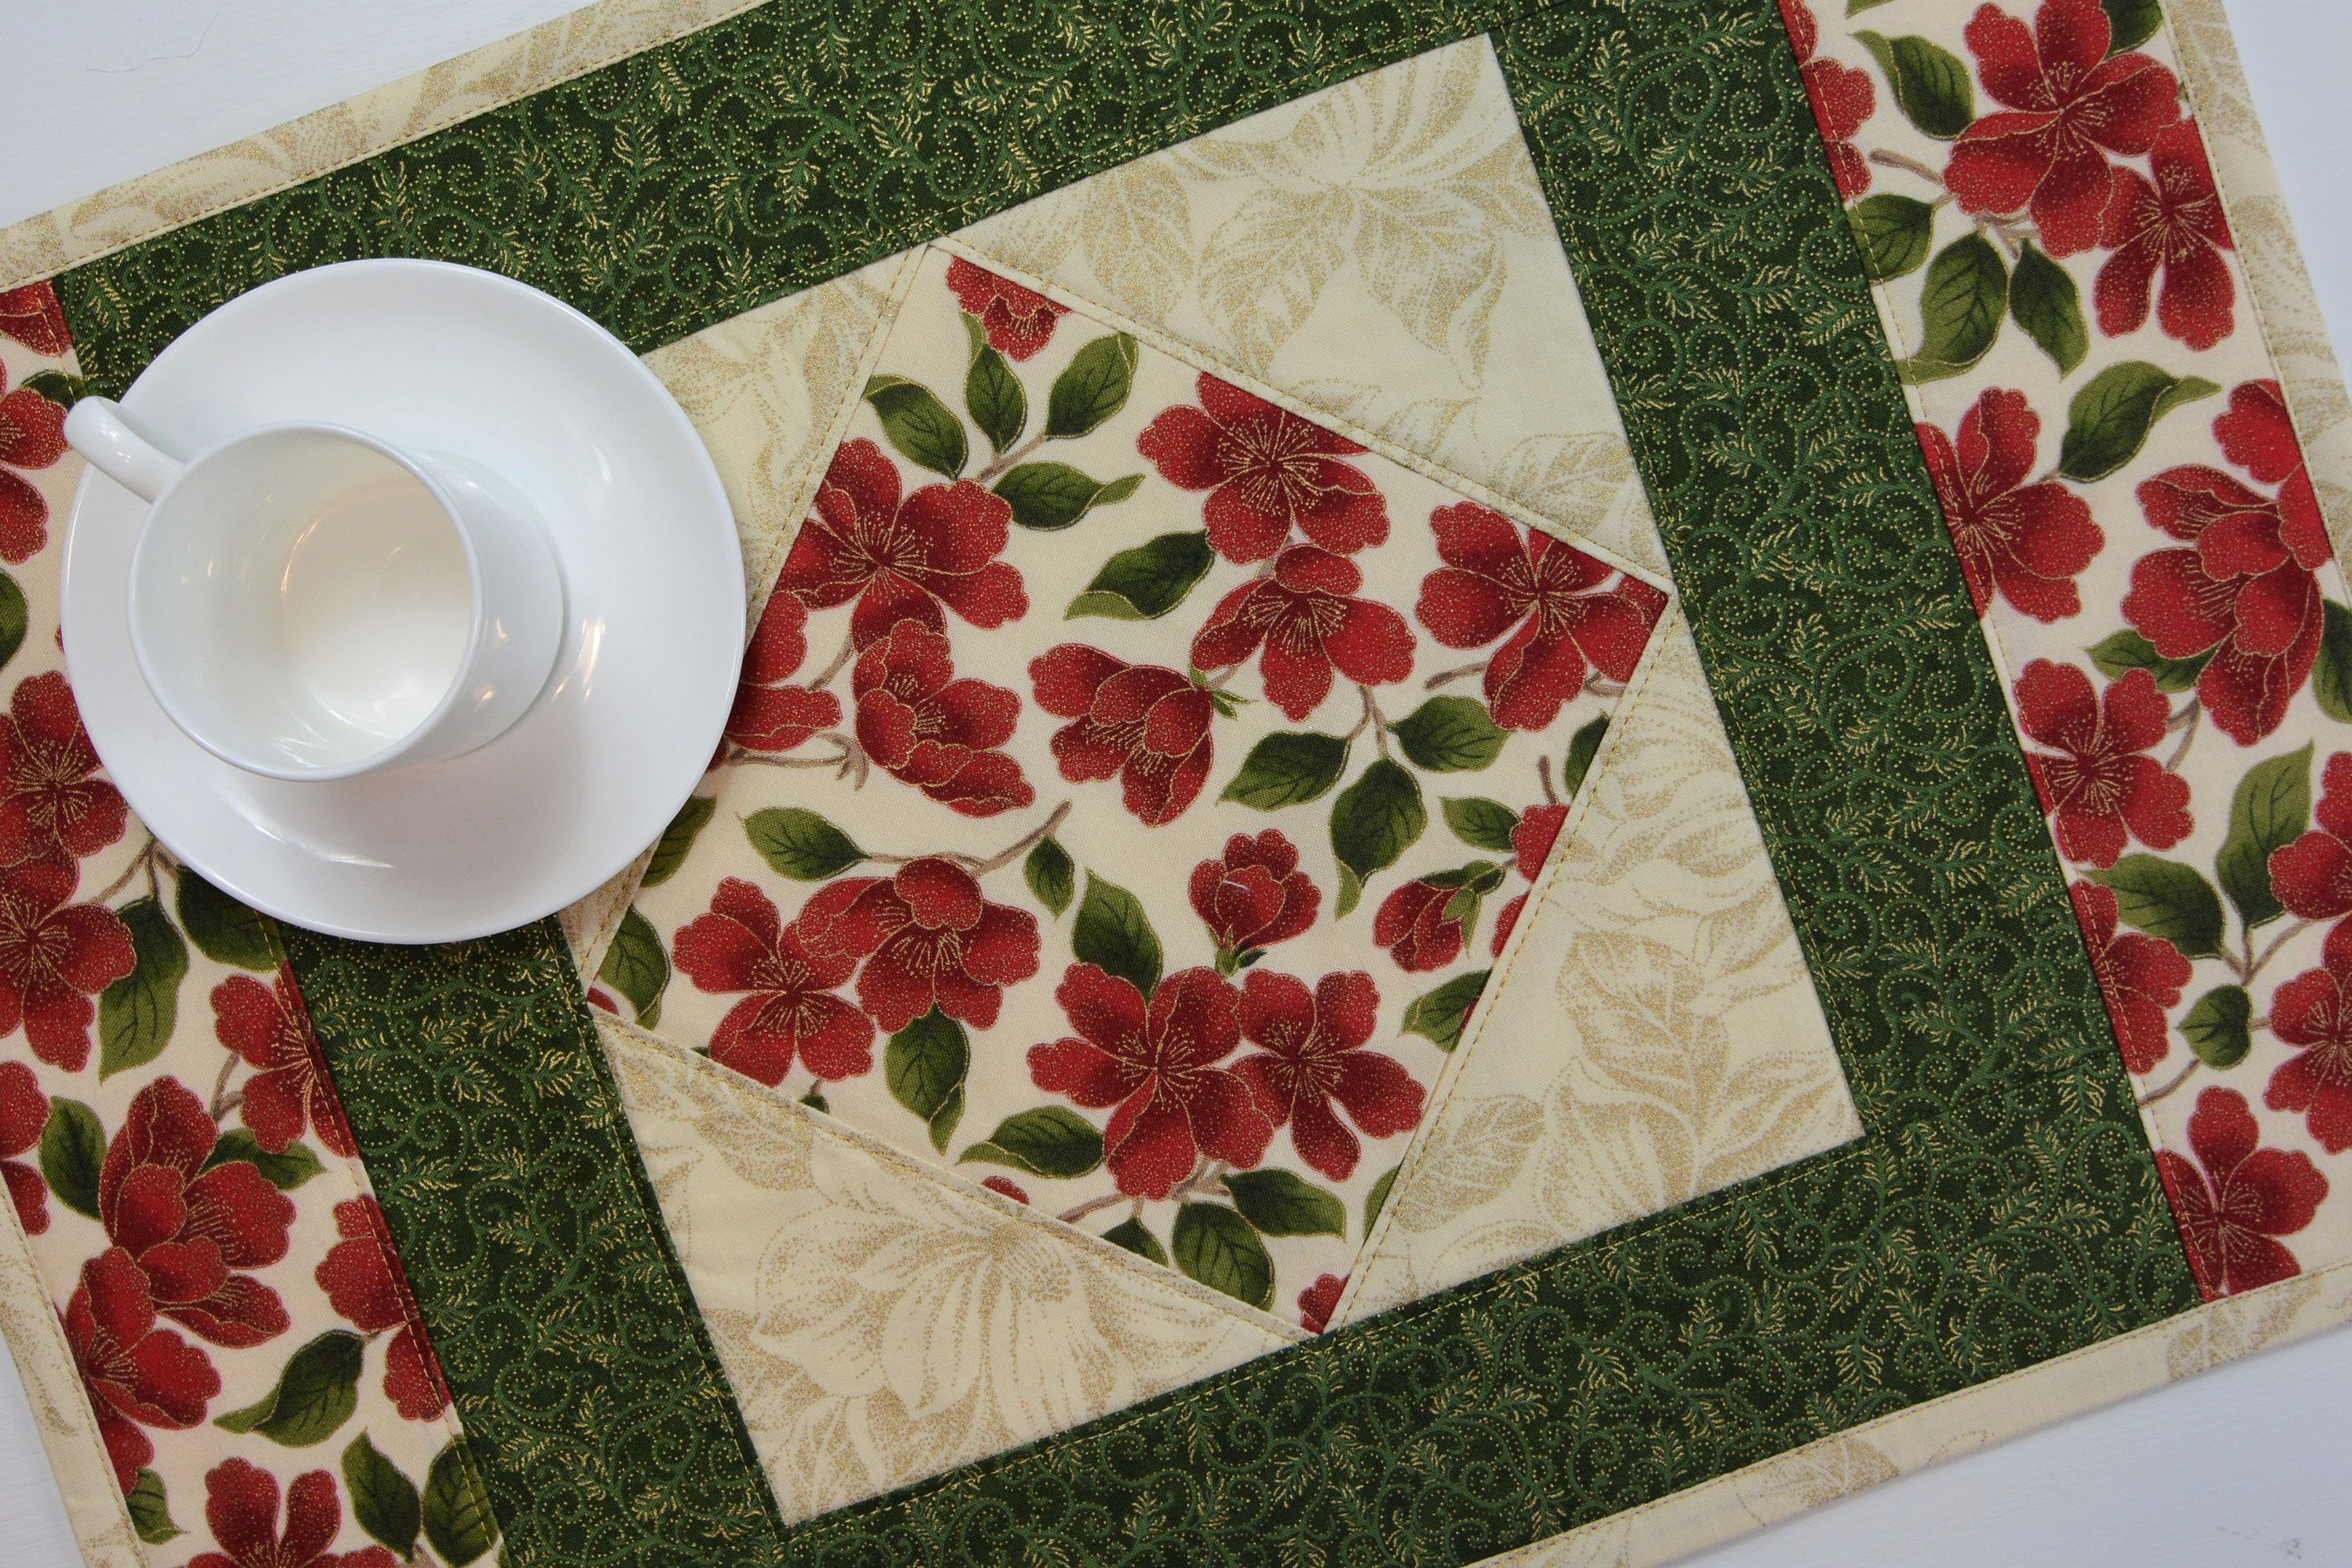 Christmas Quilted Placemats Quilted Holiday Placemats Set Etsy Place Mats Quilted Placemats Patterns Quilted Placemat Patterns